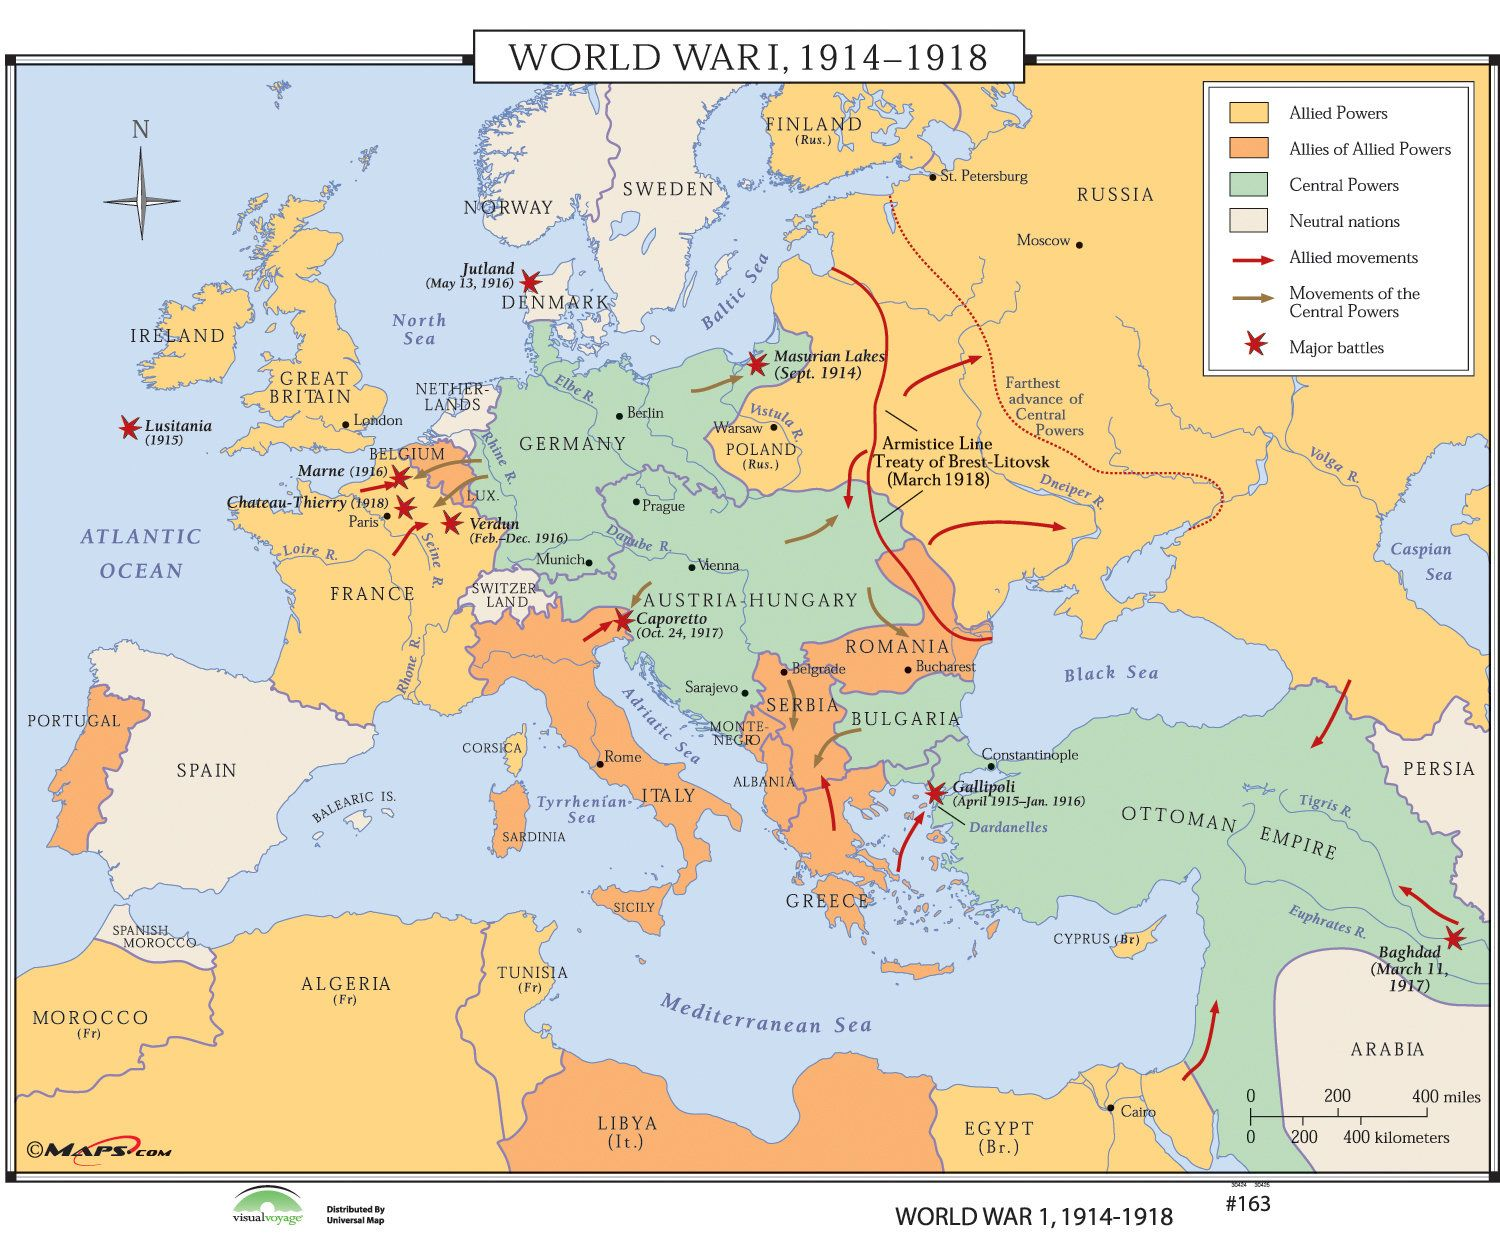 World History Wall Maps - World War I 1914-1918 | Geography ... on world map of croatia and bosnia, world war one serbia on a map, world war 2 timeline events, world map bosnia and herzegovina,